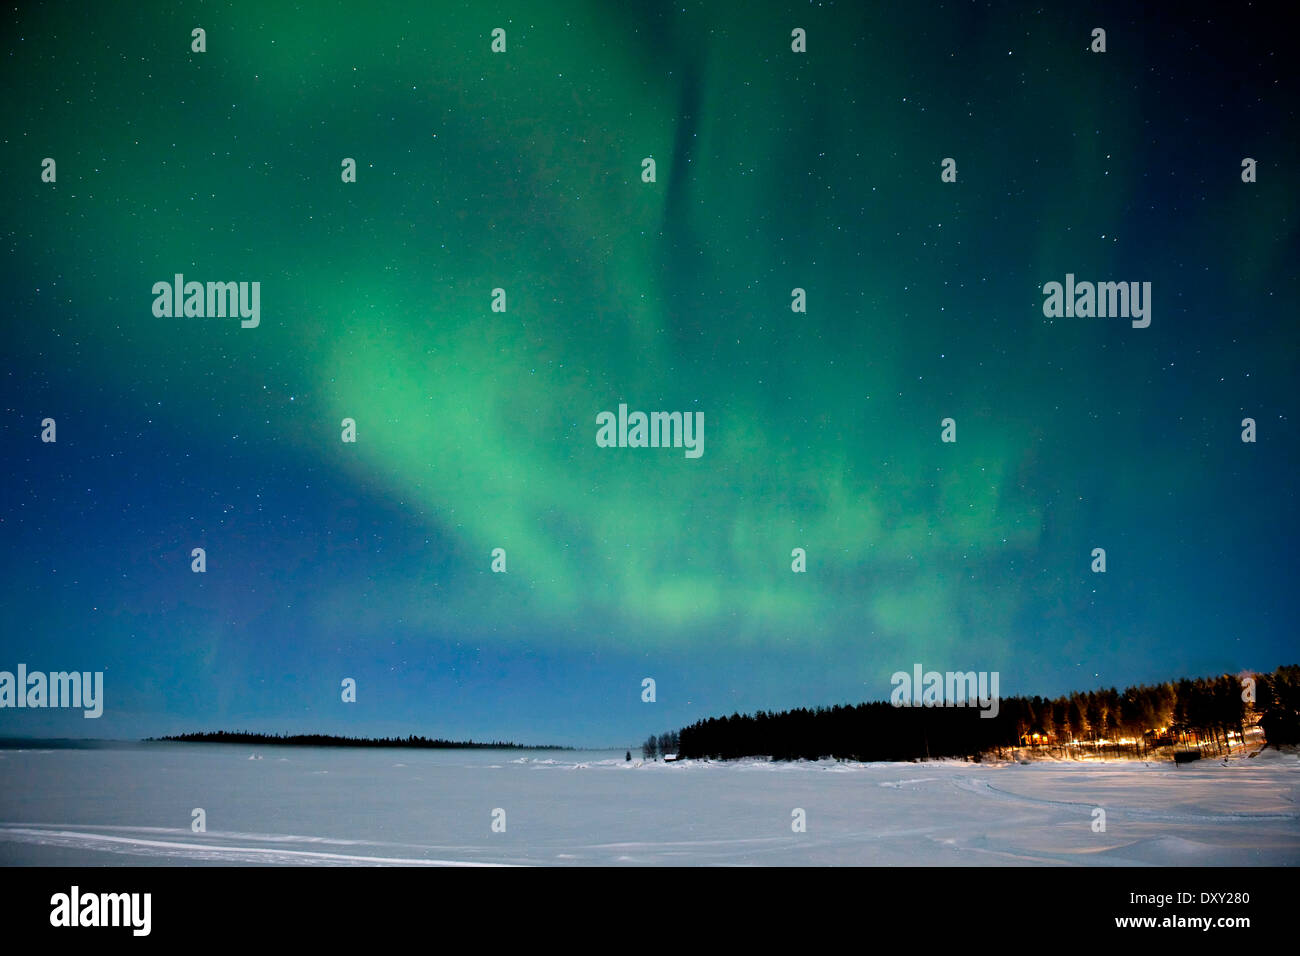 Northern Lights, Aurora Borealis, White Sea, Karelia, Russia - Stock Image